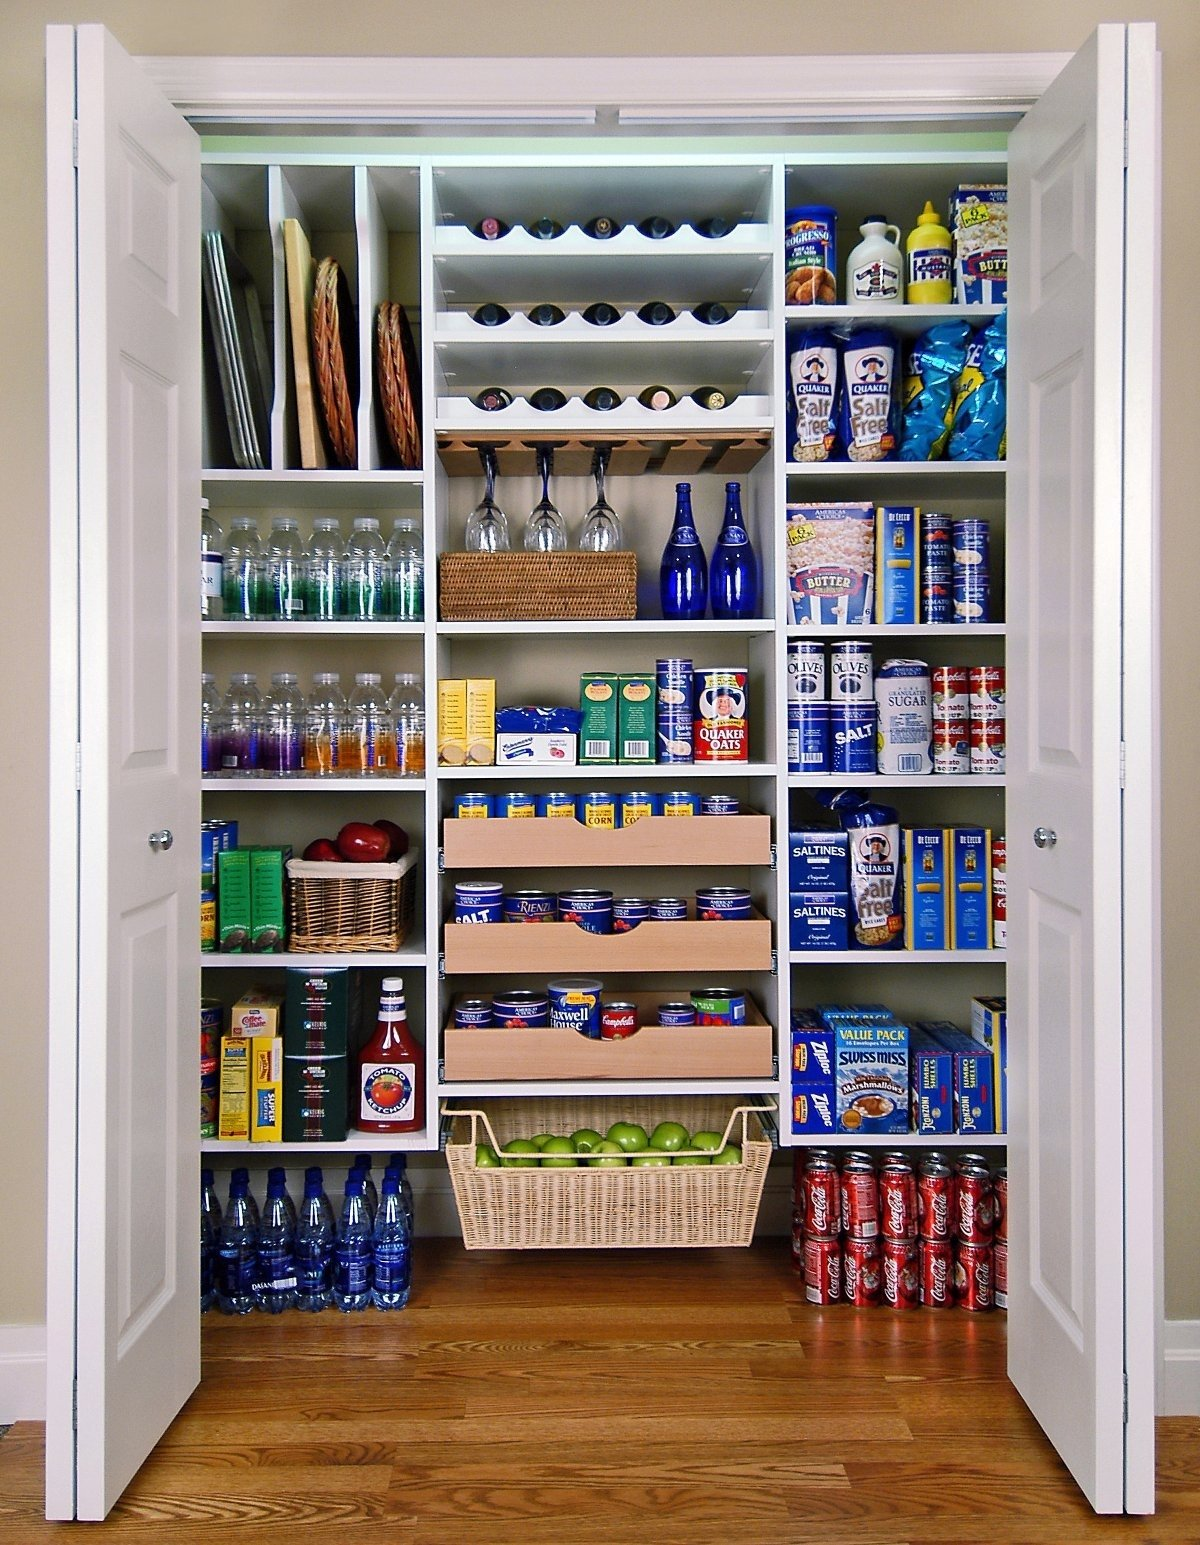 10 Spectacular Organizing Ideas For Small Spaces diy organization ideas for small spaces diy storage ideas for small 1 2020